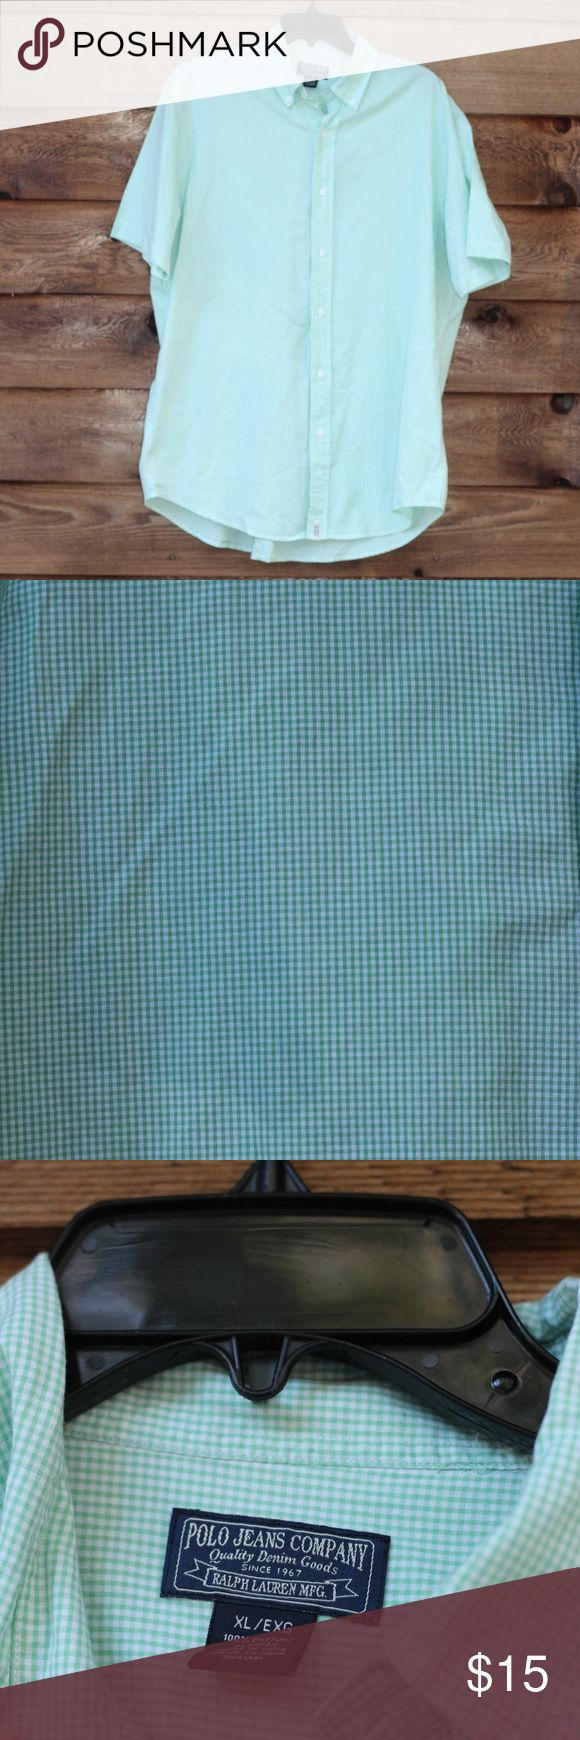 "Polo Jeans Co Short Sleeve Shirt Size XL Pre-loved Polo Jeans Co short sleeve shirt for men size XL. Gingham pattern in white and lime green. In great used condition.   Approx 26"" from armpit to armpit Approx 29.5"" from shoulder to hem Sleeves are approx 10.5"" 100% Cotton Polo Jeans Company Shirts Casual Button Down Shirts"